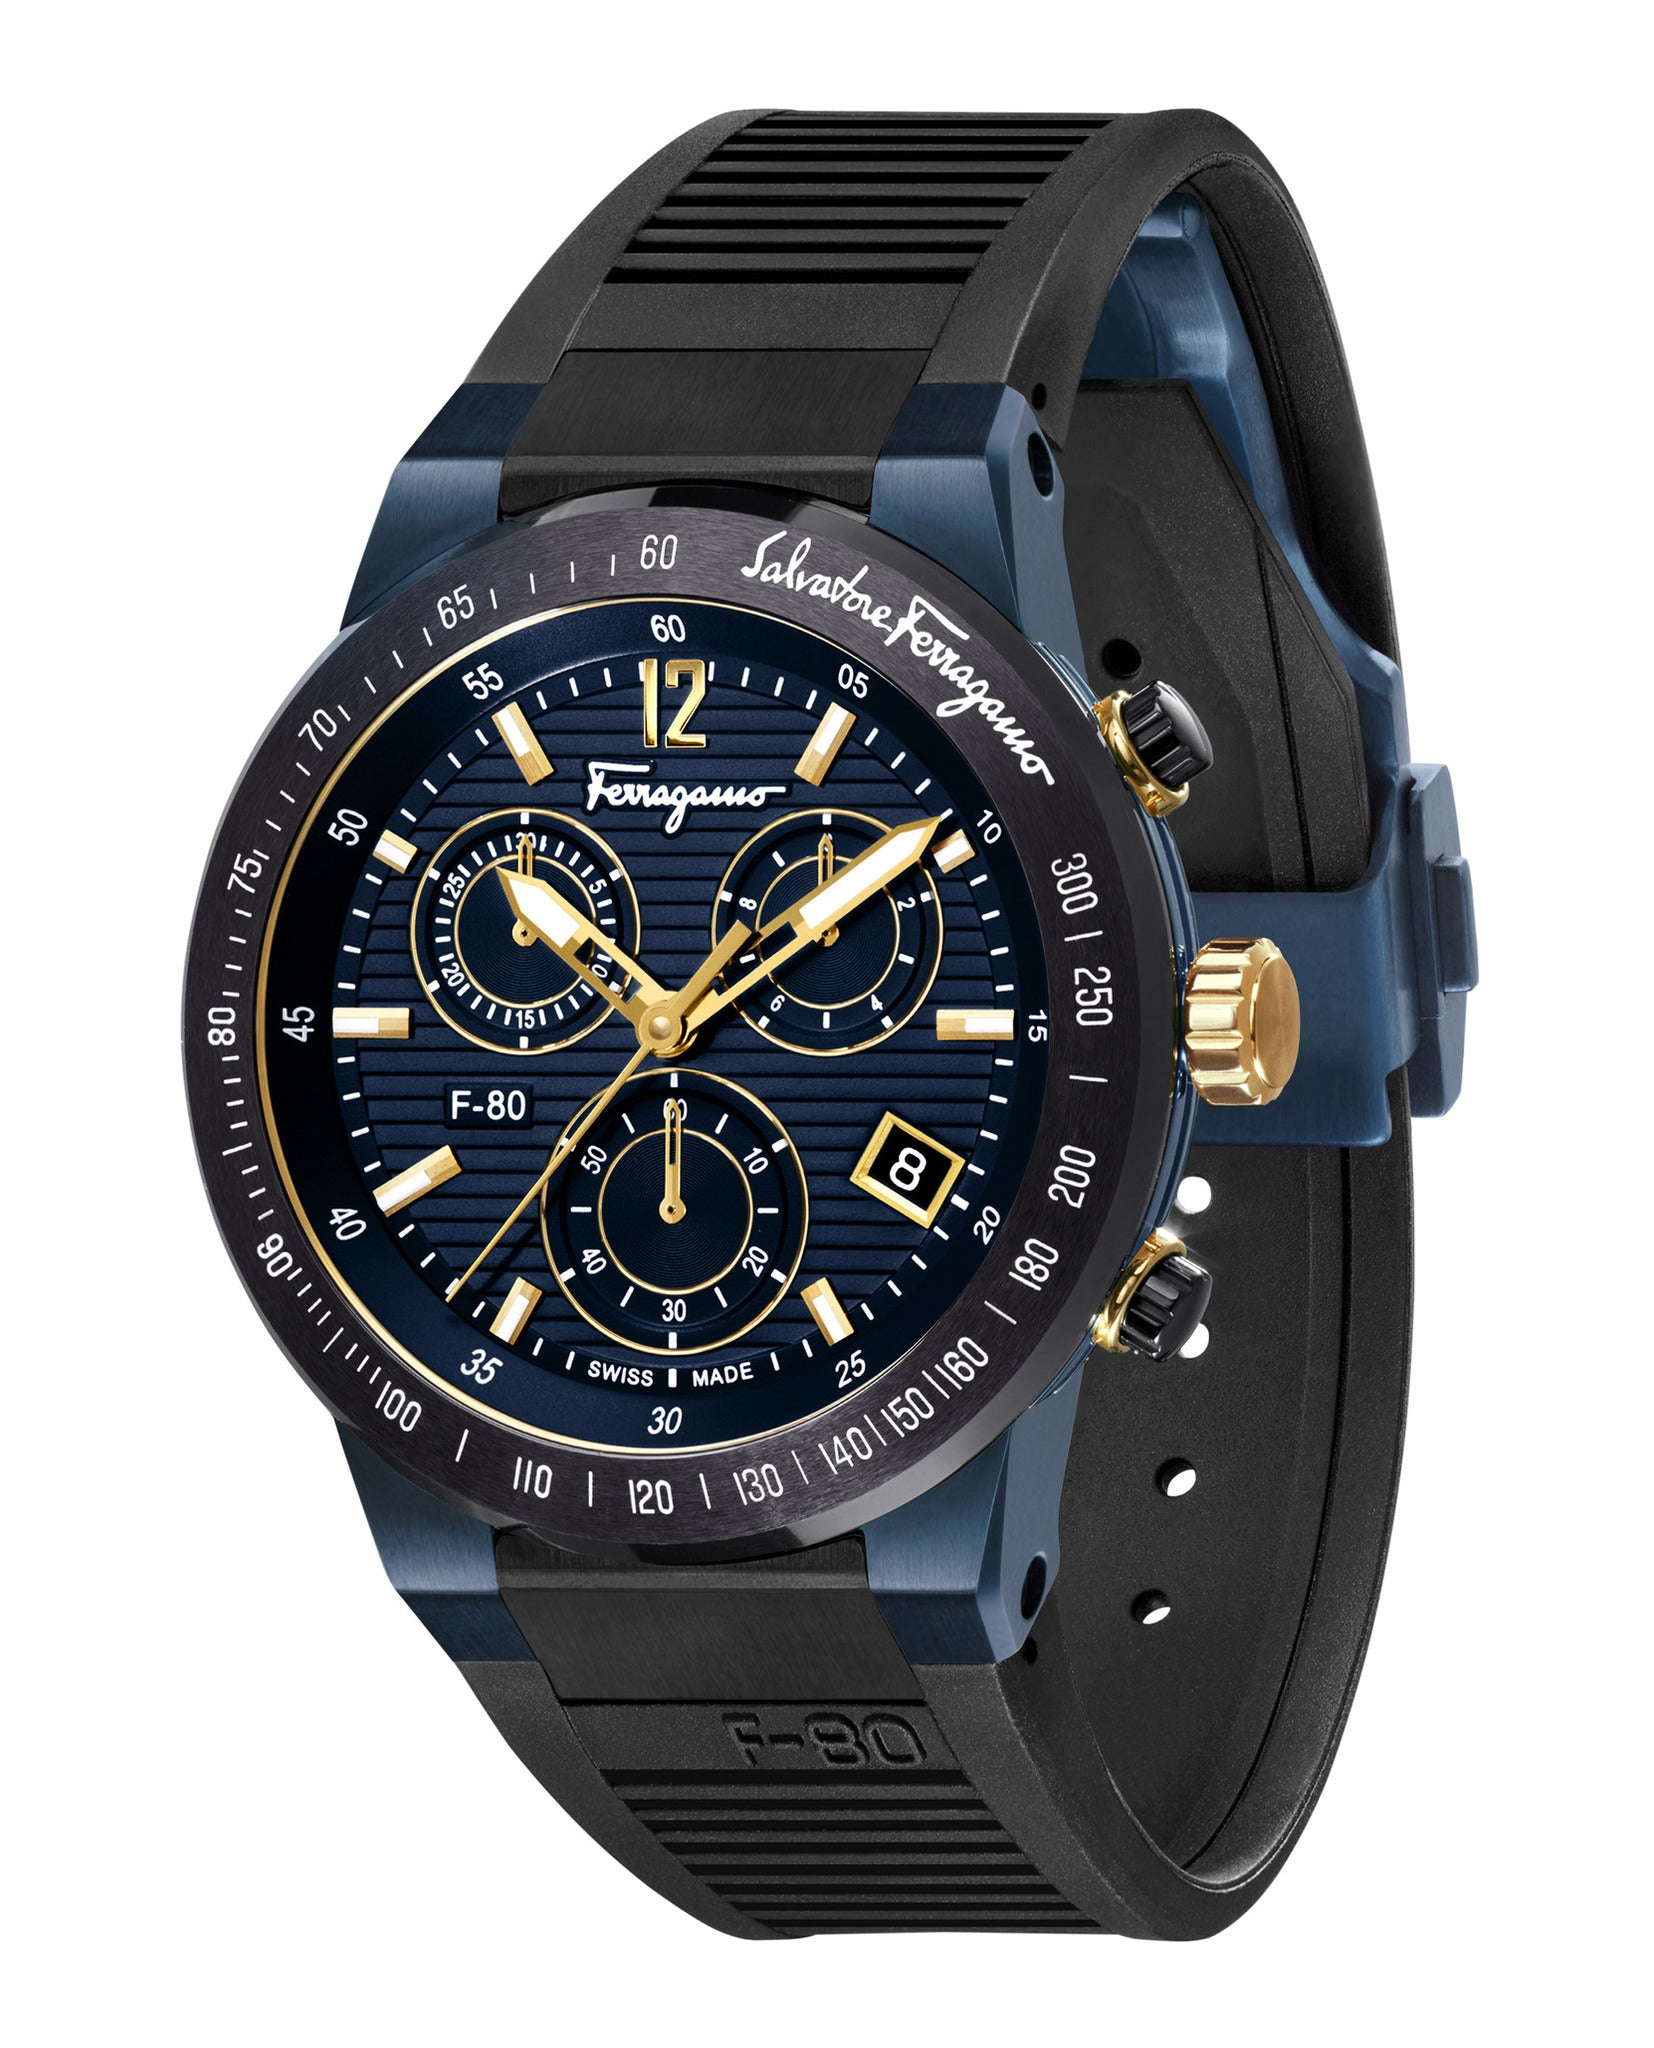 Salvatore Ferragamo F-80 Chrono Watch